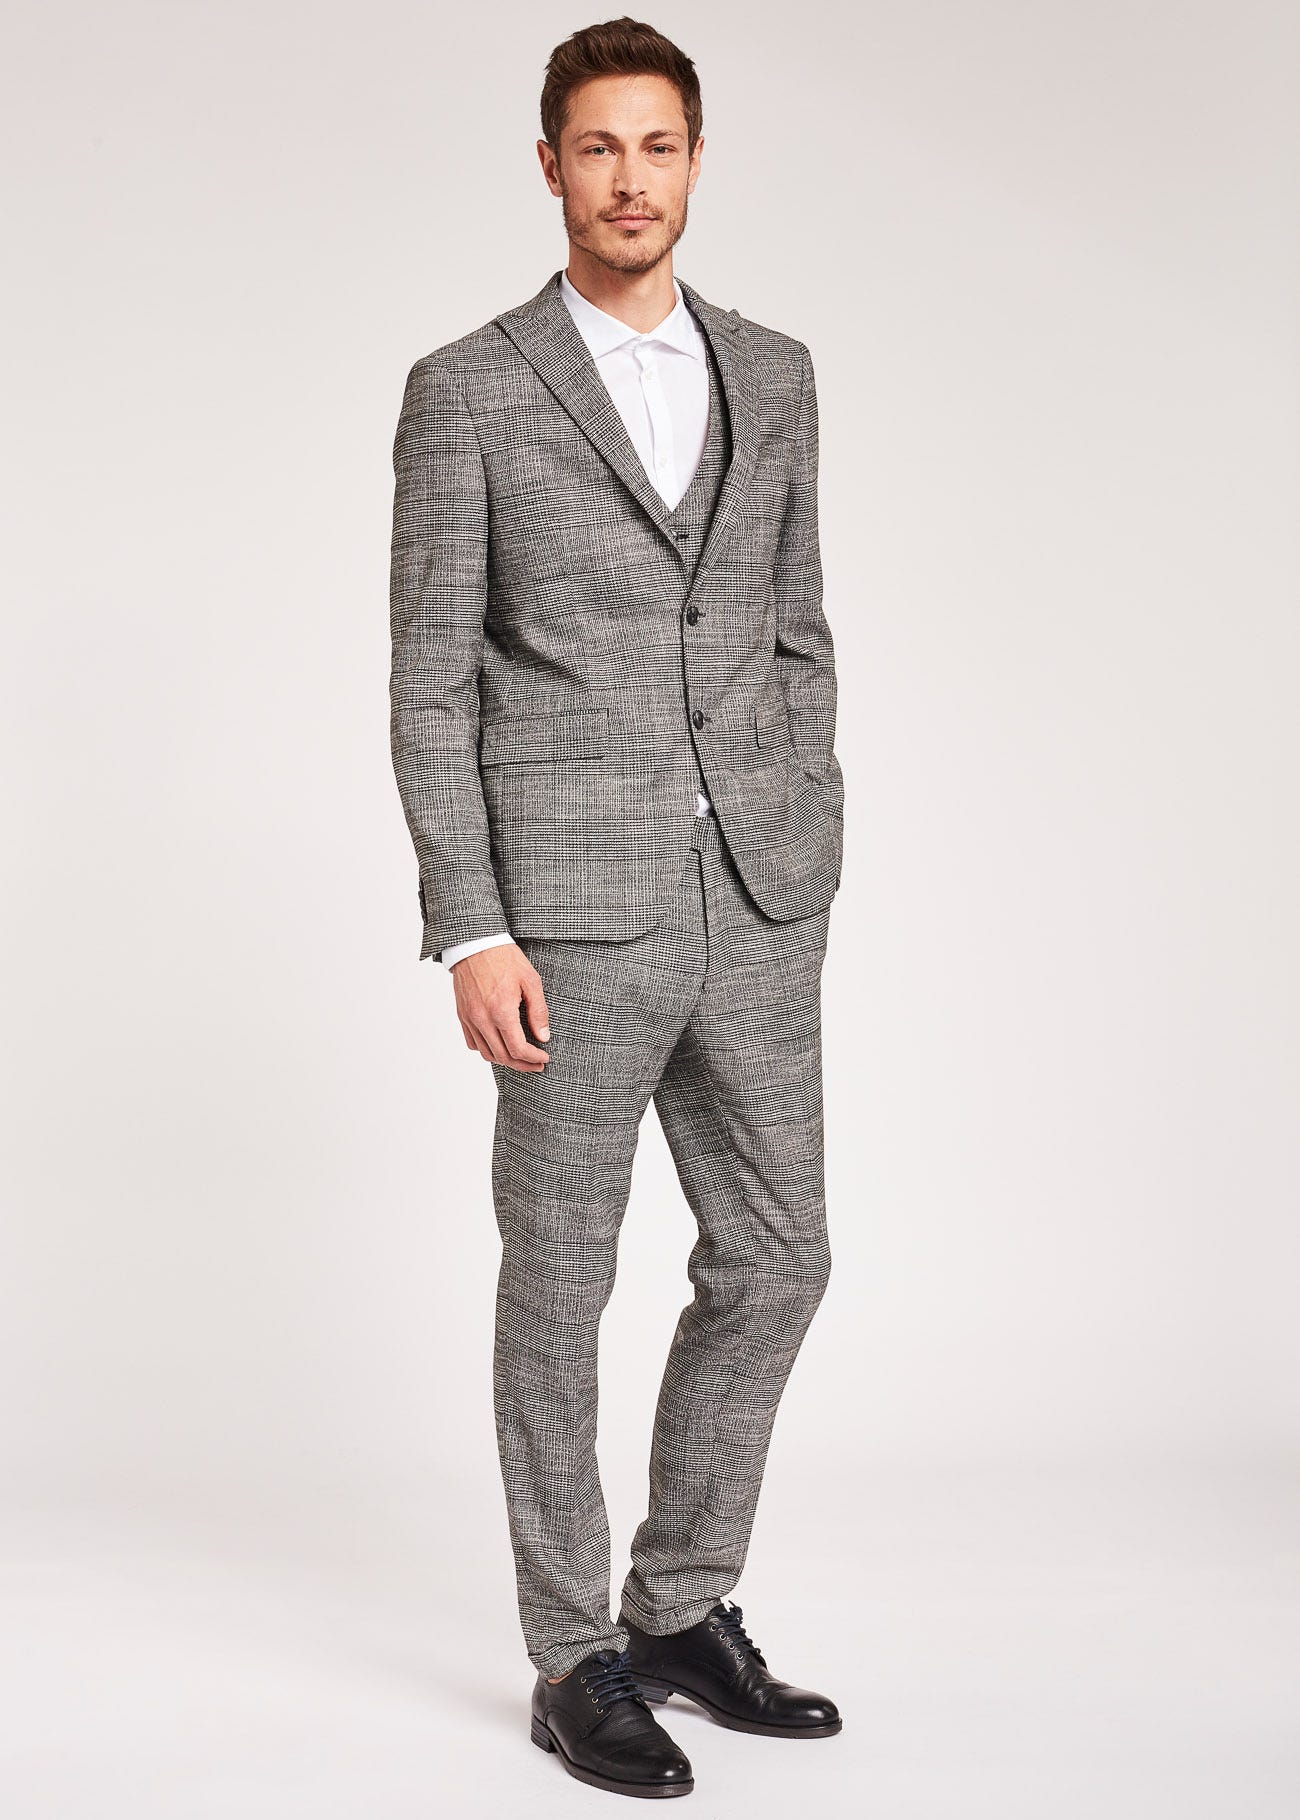 Prince of Wales checked suit